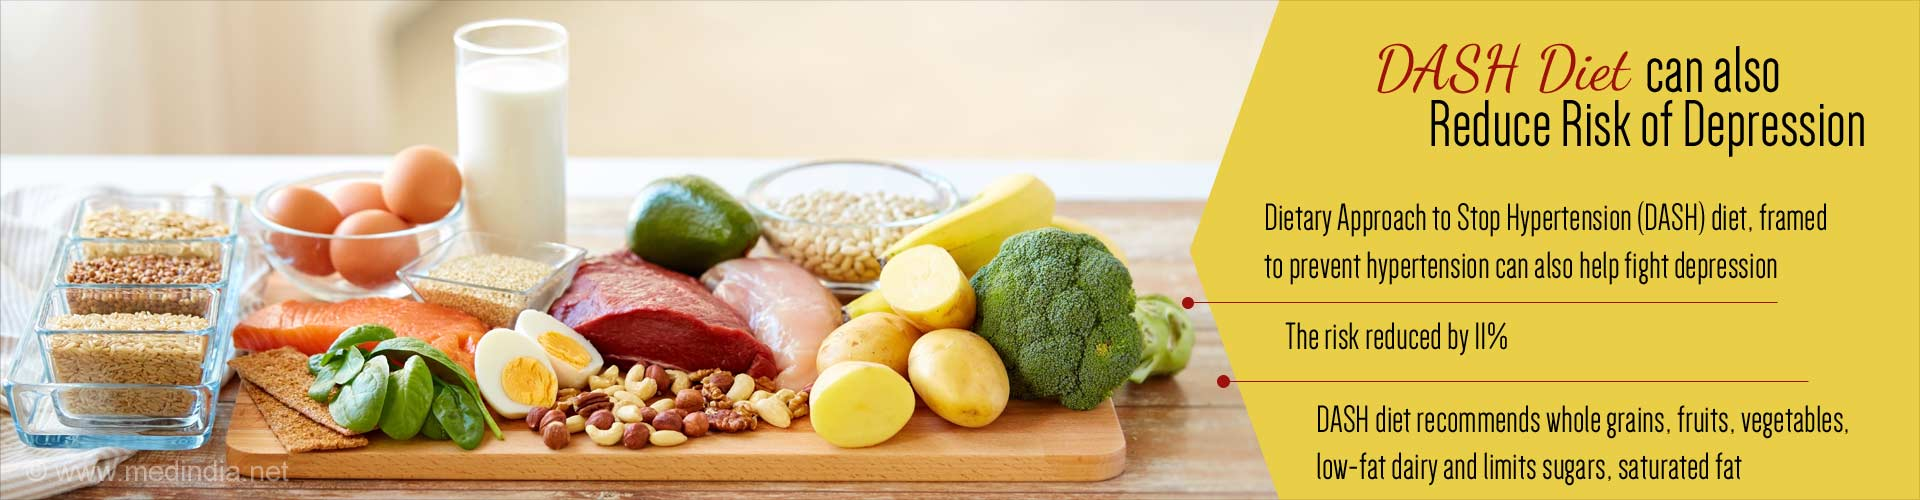 DASH Diet Can Reduce Risk of Depression